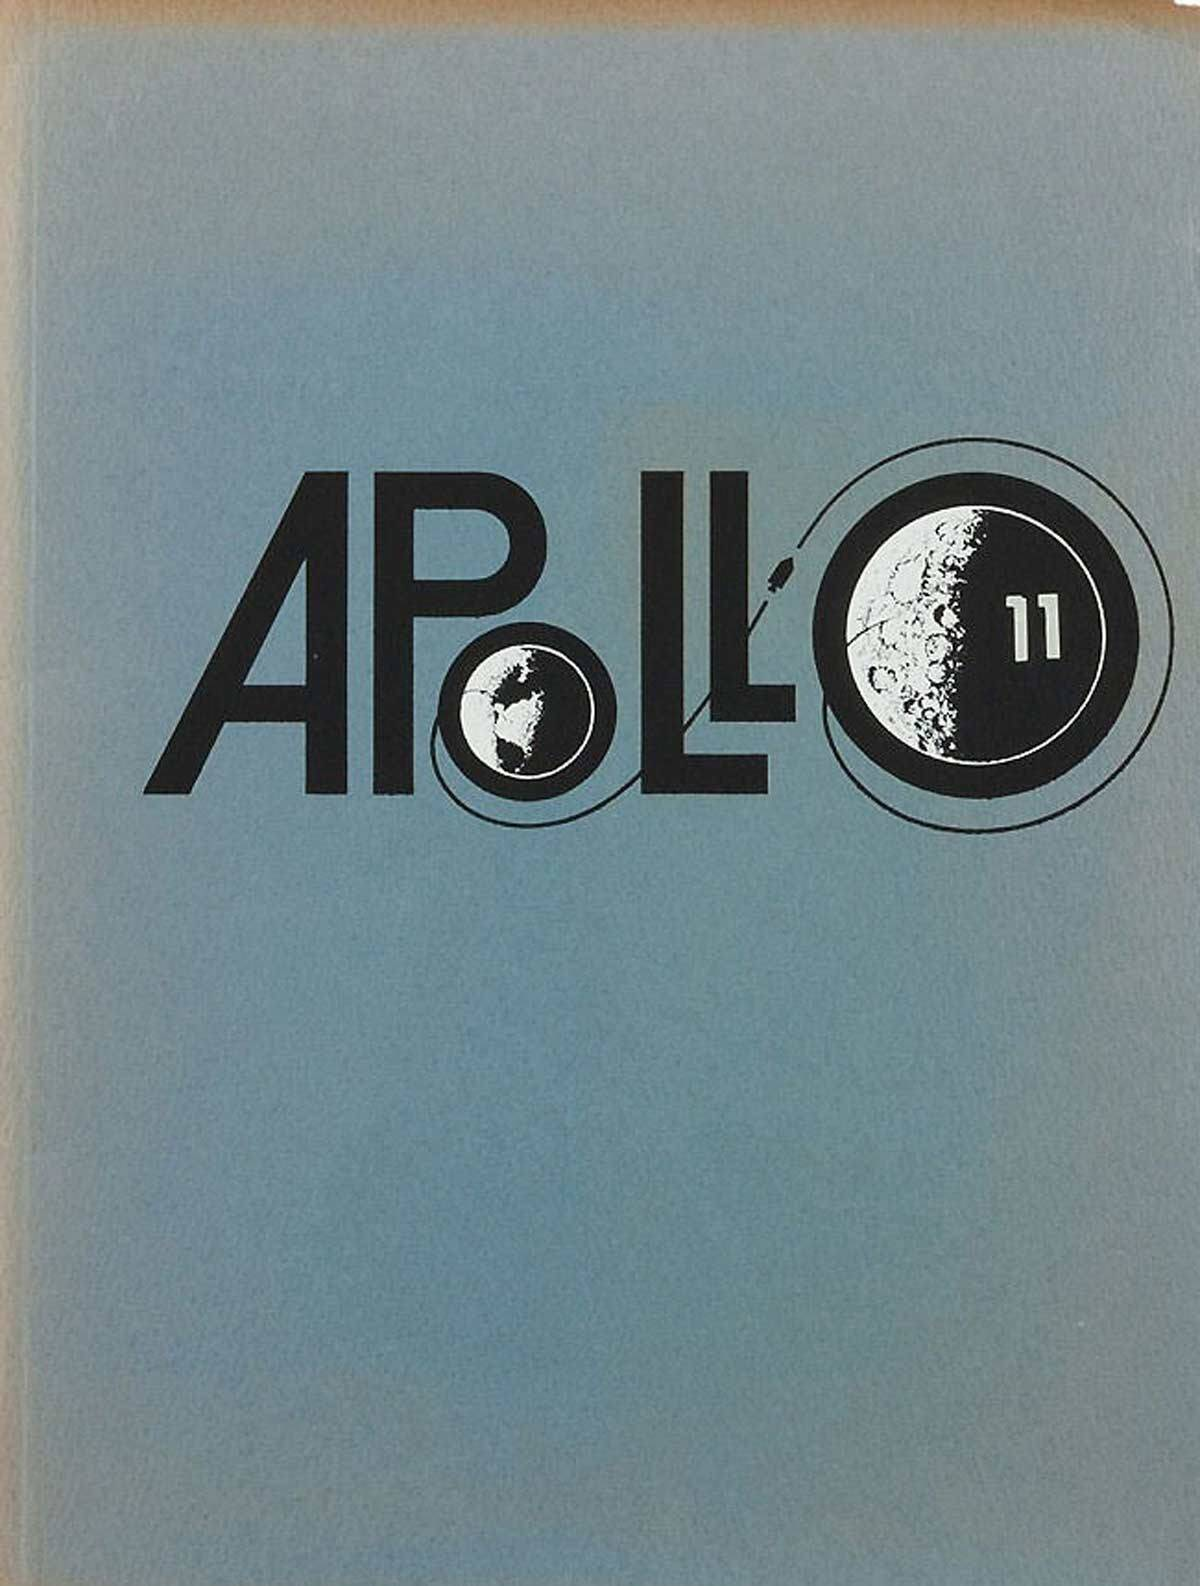 Apollo-11-Logo-Design-on-Vintage-NASA-Brochure